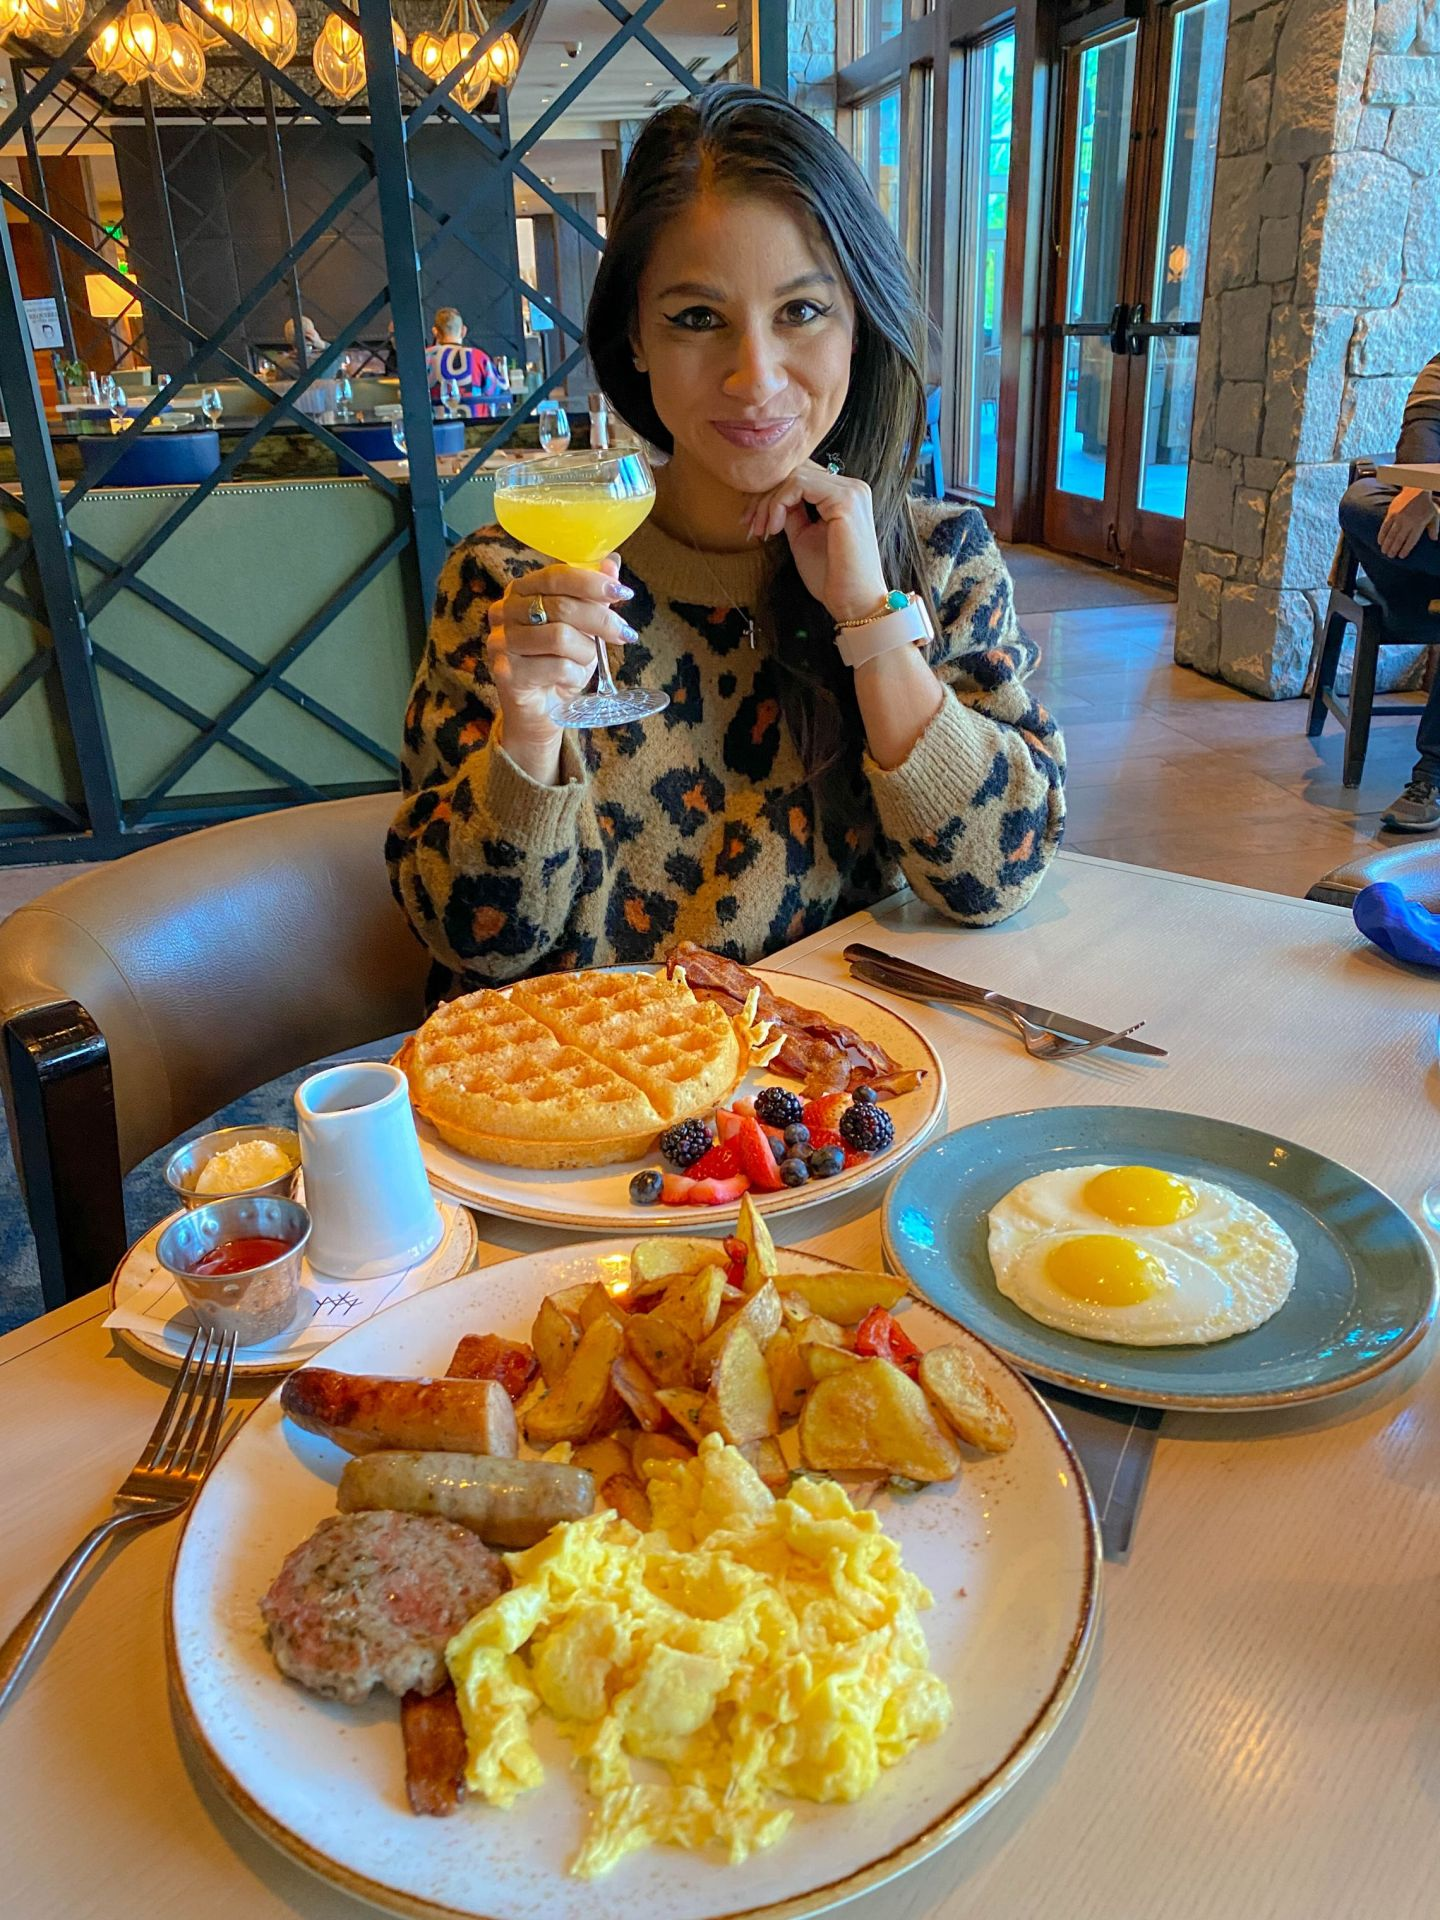 An elegant breakfast at The Bistro Bar at Edgewood Tahoe with a view of the country's biggest alpine lake.